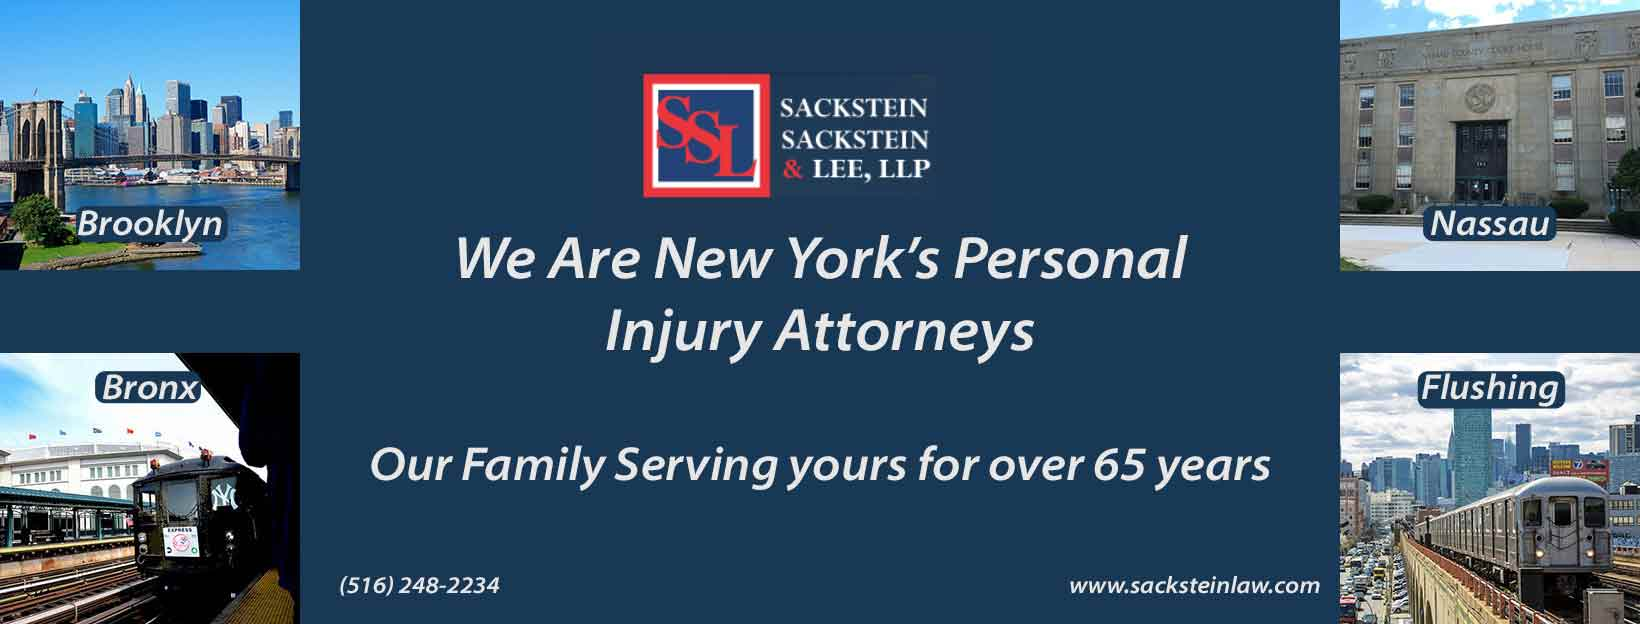 Sackstein Sackstein & Lee, LLP Reviews, Ratings | Personal Injury Law near 1140 Franklin Avenue, Suite 230 , Garden City NY